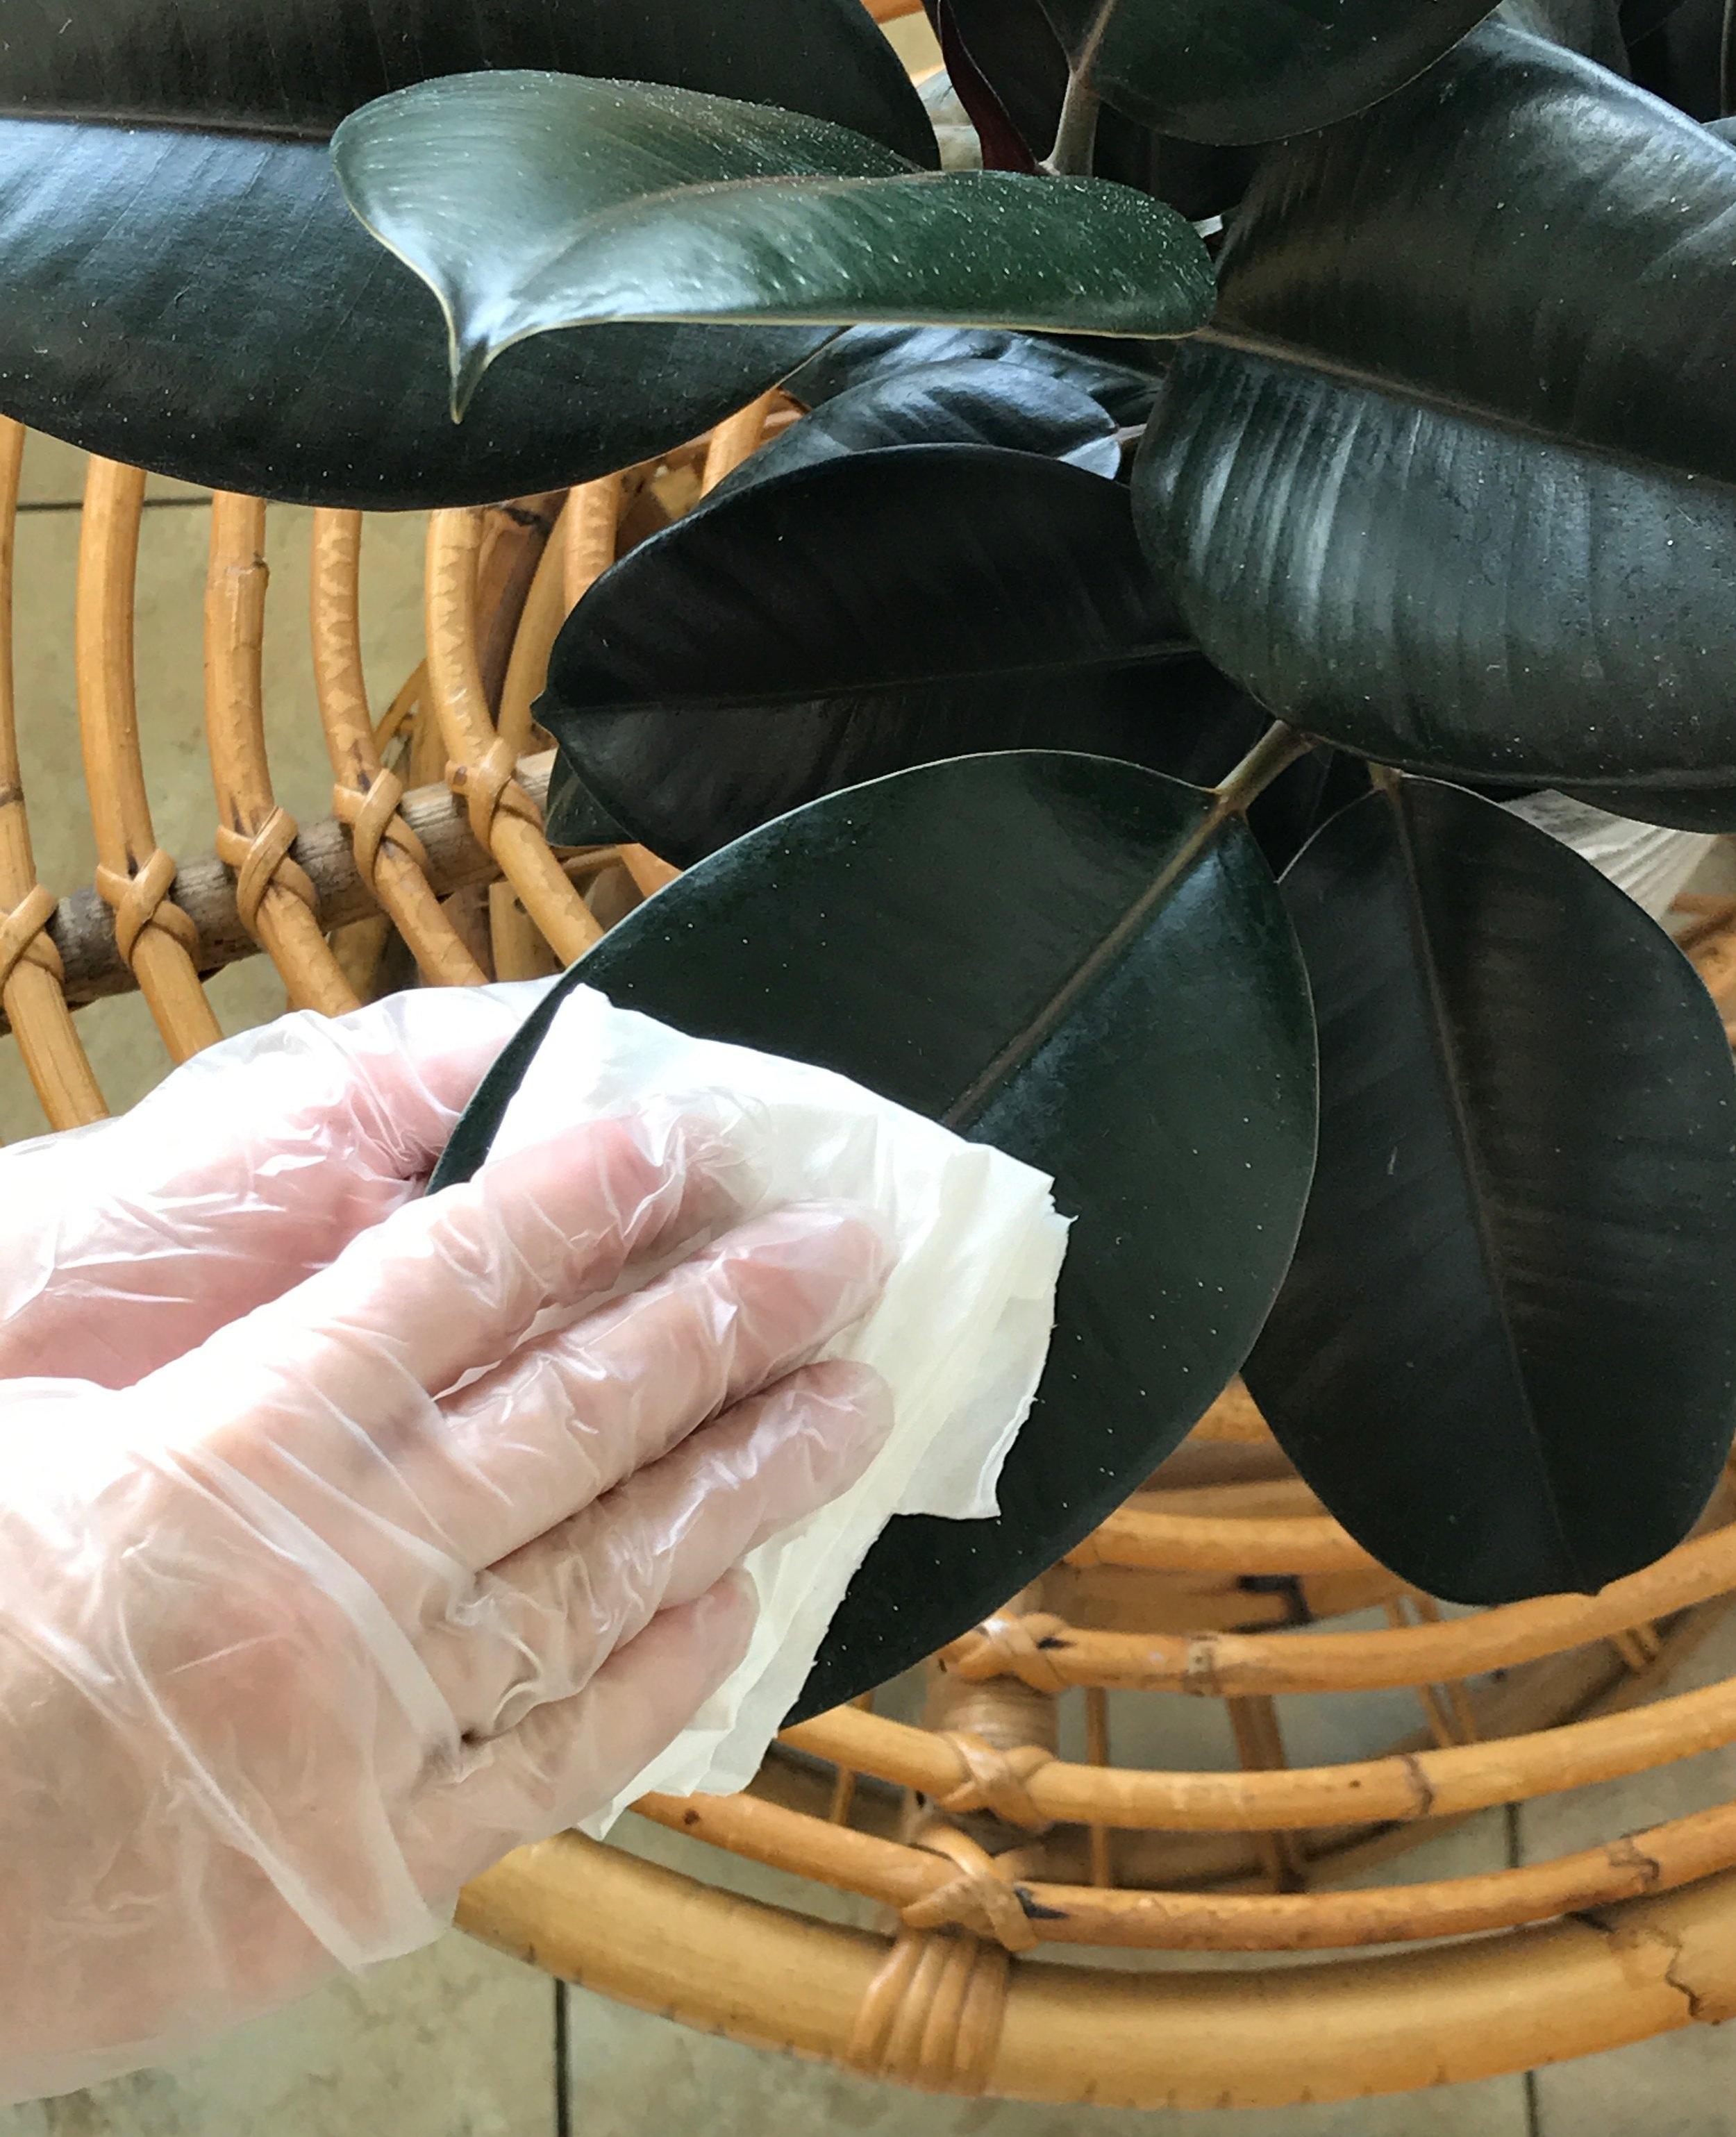 Dusty plants can't breathe - When dust collects on leaves, it blocks the plant's ability to perform photosynthesis. Wipe big leaf plants with a soft cloth or wet paper towel. Use a small paint brush or make up brush for fuzzy leaf plants.